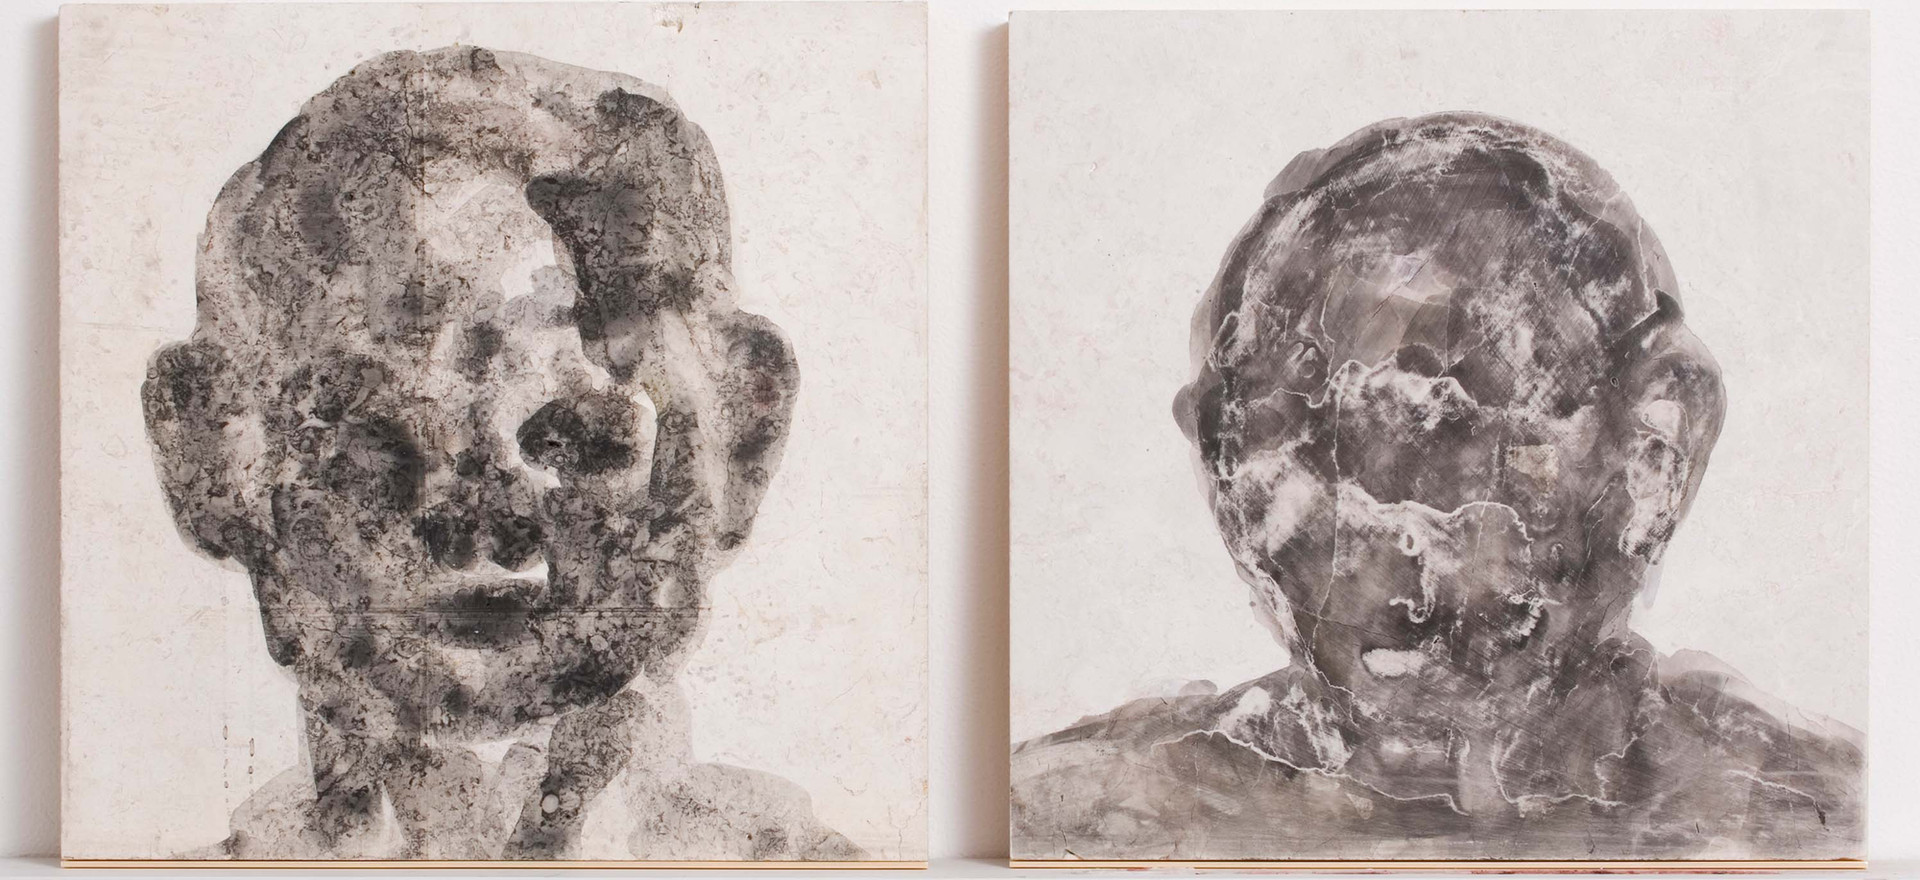 'Lithic Presence I & II', 2009, watercolour on marble, 46 x 46 cm each